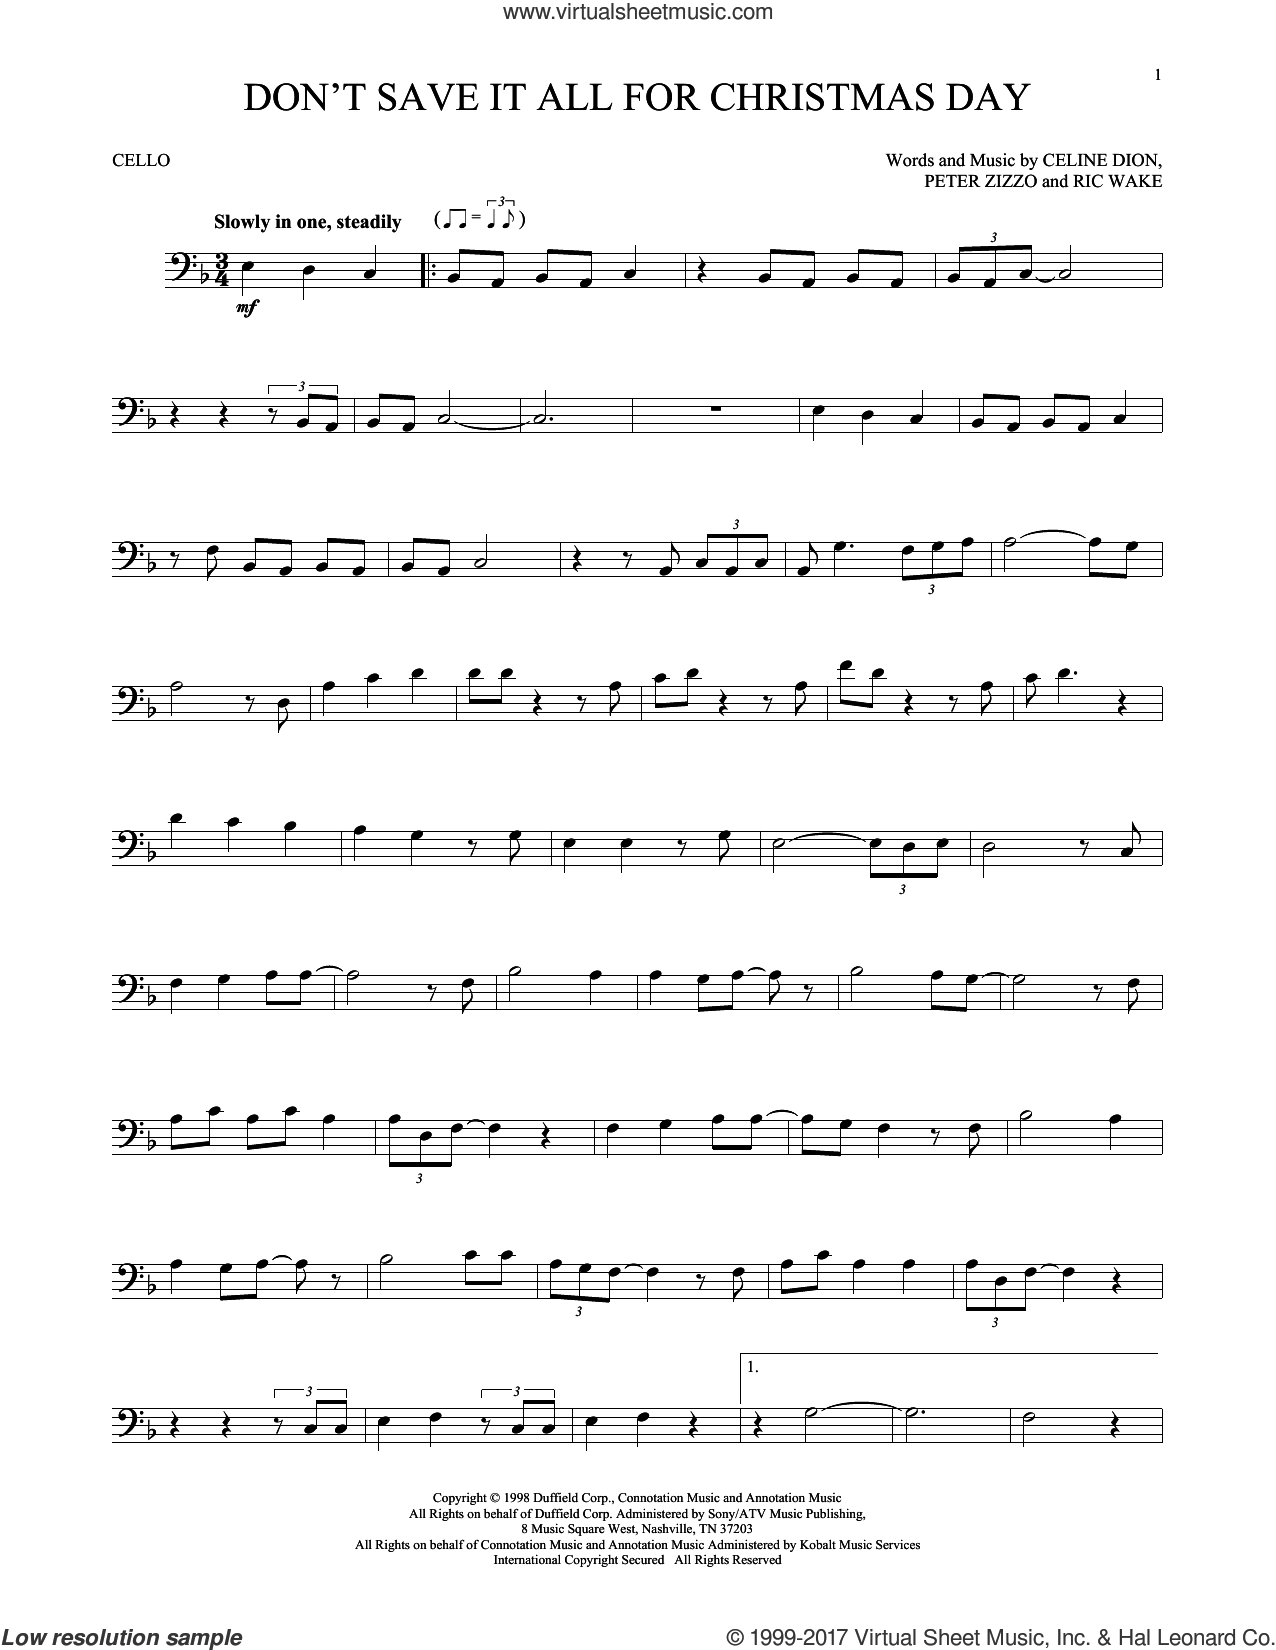 Don't Save It All For Christmas Day sheet music for cello solo by Celine Dion, Peter Zizzo and Ric Wake, intermediate skill level